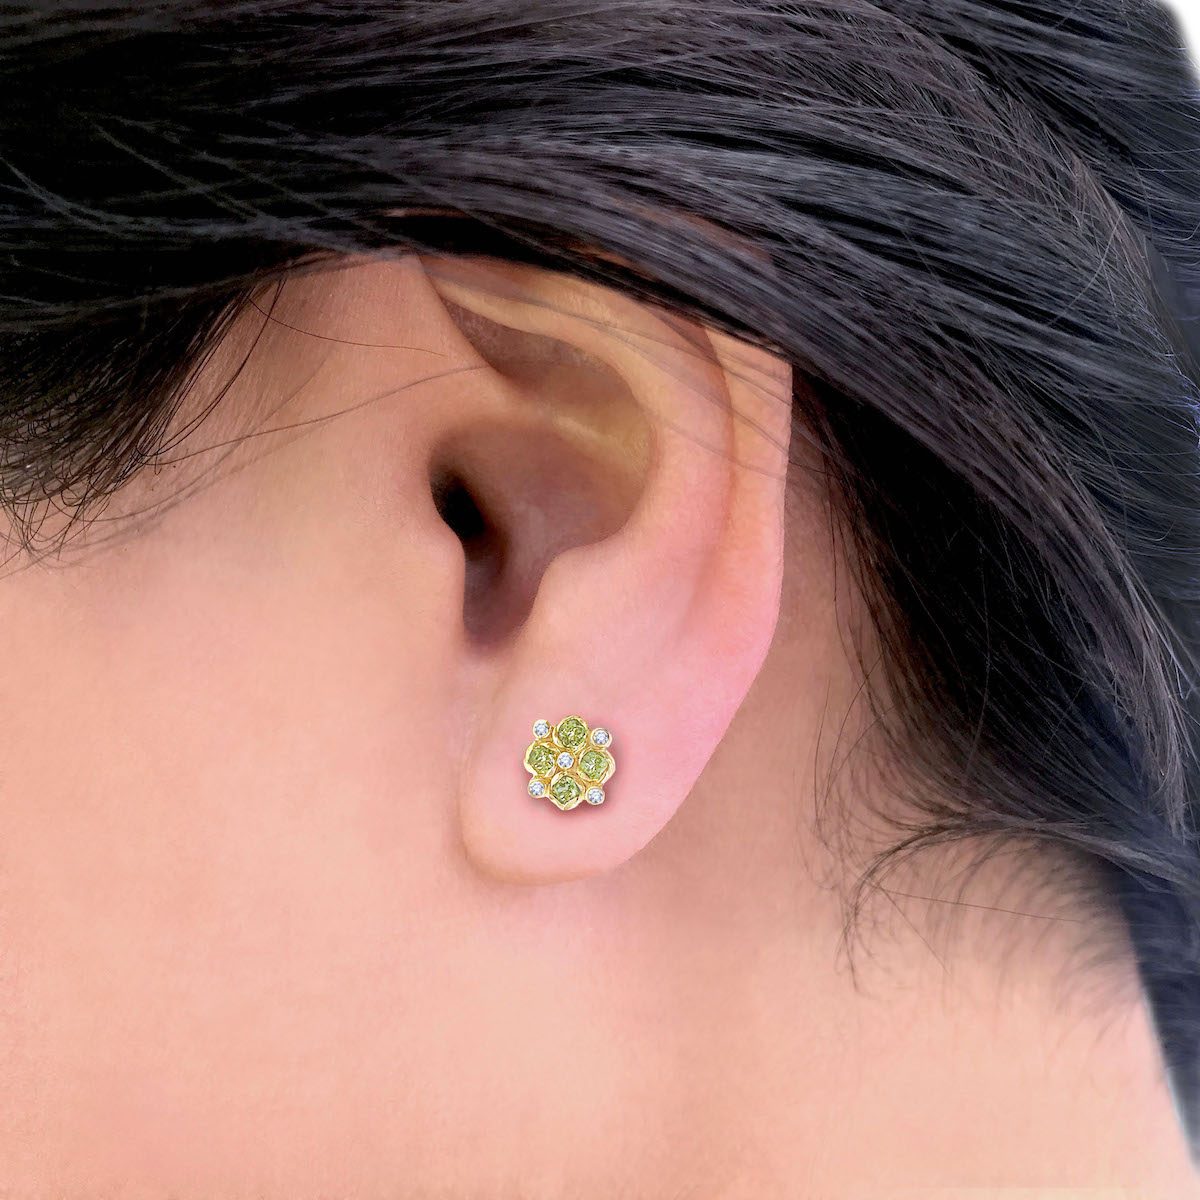 7mm-peridot-diamond-checker-cluster-studs-YG-14k-18k-3289-1 copy